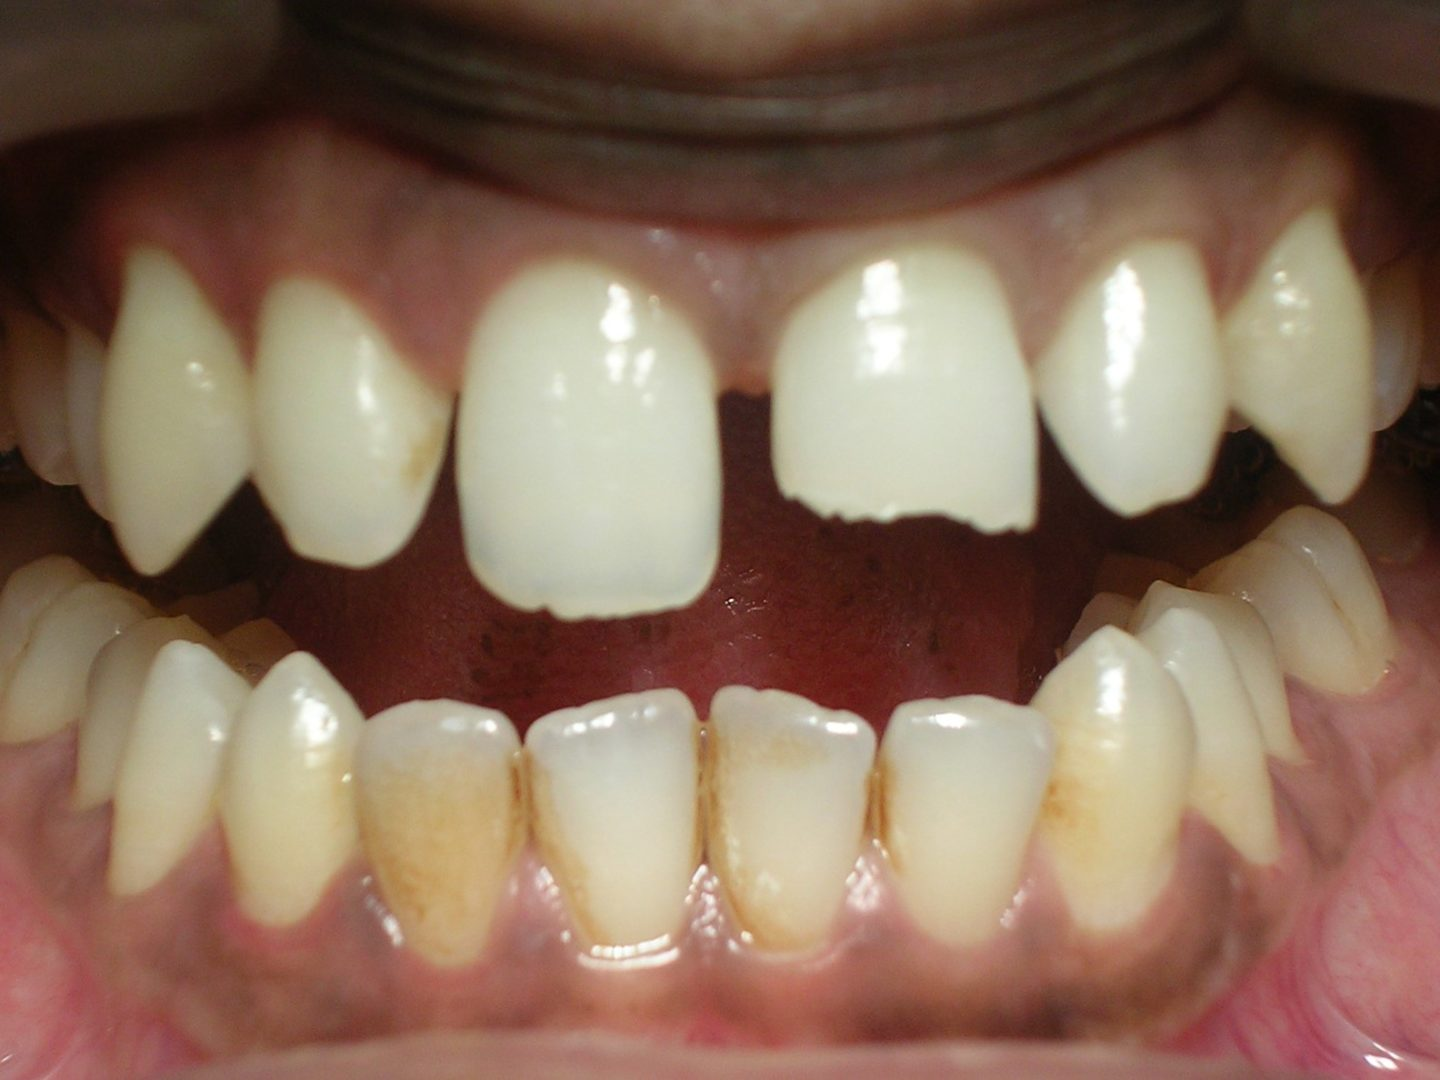 Composite Veneers - Dr Smilez Dental Center - Chennai